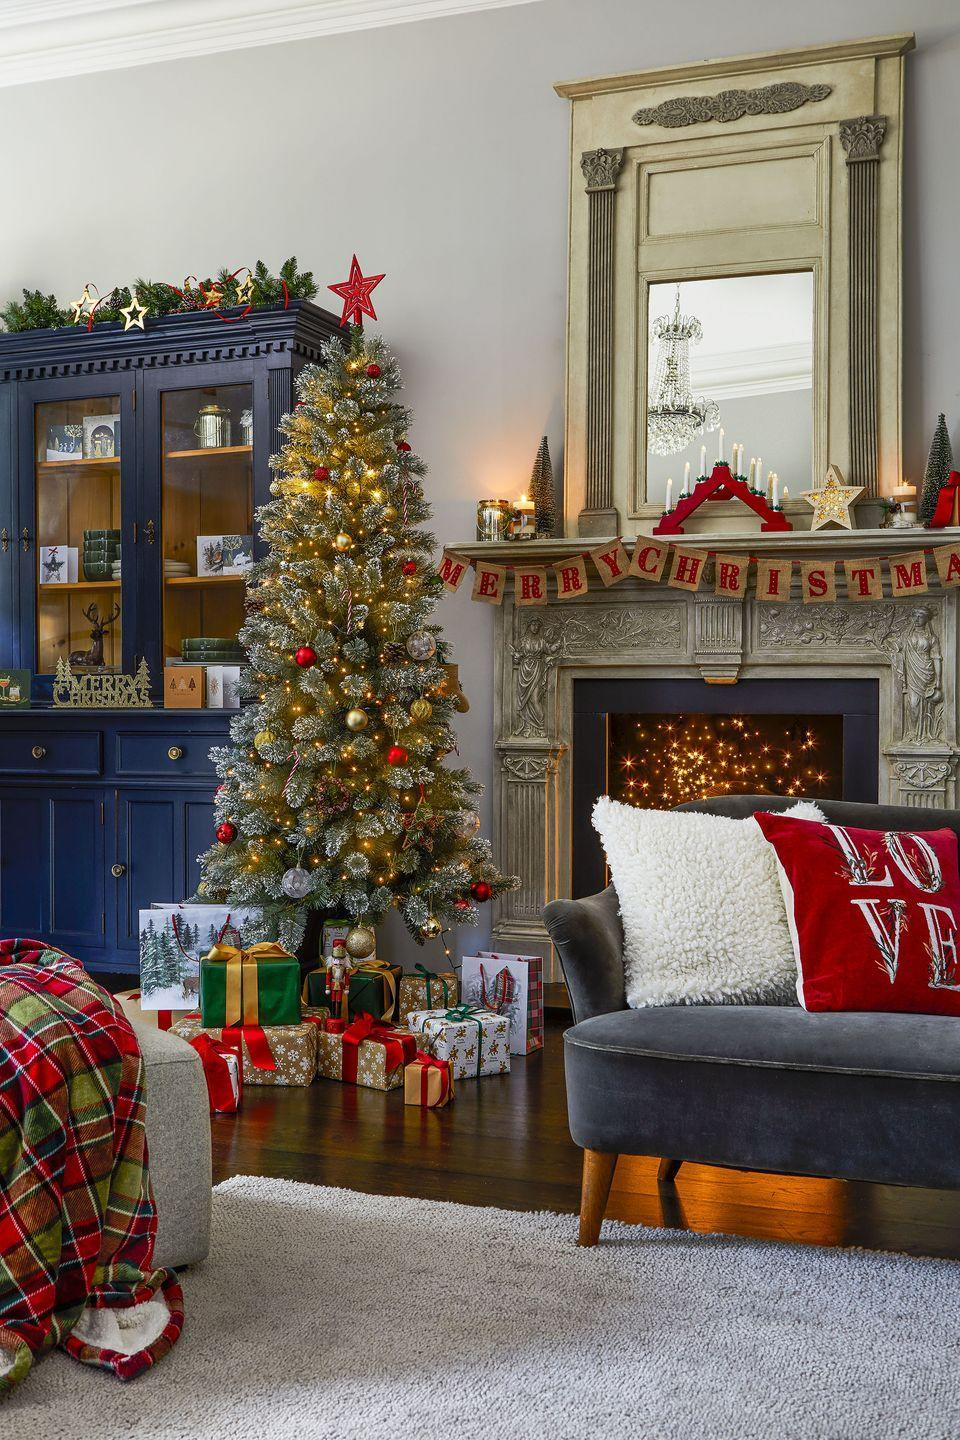 """<p>Keep it classic this year with traditional tones of red, green and gold. As part of Tesco's Forest Greens trend, you'll find hessian bunting (£5), a tartan sherpa throw (£20), <a href=""""https://www.housebeautiful.com/uk/lifestyle/shopping/g313/christmas-cushions-for-home/"""" rel=""""nofollow noopener"""" target=""""_blank"""" data-ylk=""""slk:Christmas cushions"""" class=""""link rapid-noclick-resp"""">Christmas cushions</a> (£10), plus an on-trend <a href=""""https://www.housebeautiful.com/uk/decorate/display/a31904667/drinks-trolley-bar-cart/"""" rel=""""nofollow noopener"""" target=""""_blank"""" data-ylk=""""slk:drinks trolley"""" class=""""link rapid-noclick-resp"""">drinks trolley</a> (£40). </p><p>'The Tesco Drinks Trolley is both incredibly stylish and practical,' the supermarket says. 'With a sleek golden metal frame, glass shelving, and wheels for smooth mobility around the party, this is a must-have for festive entertaining this season.'<br></p>"""